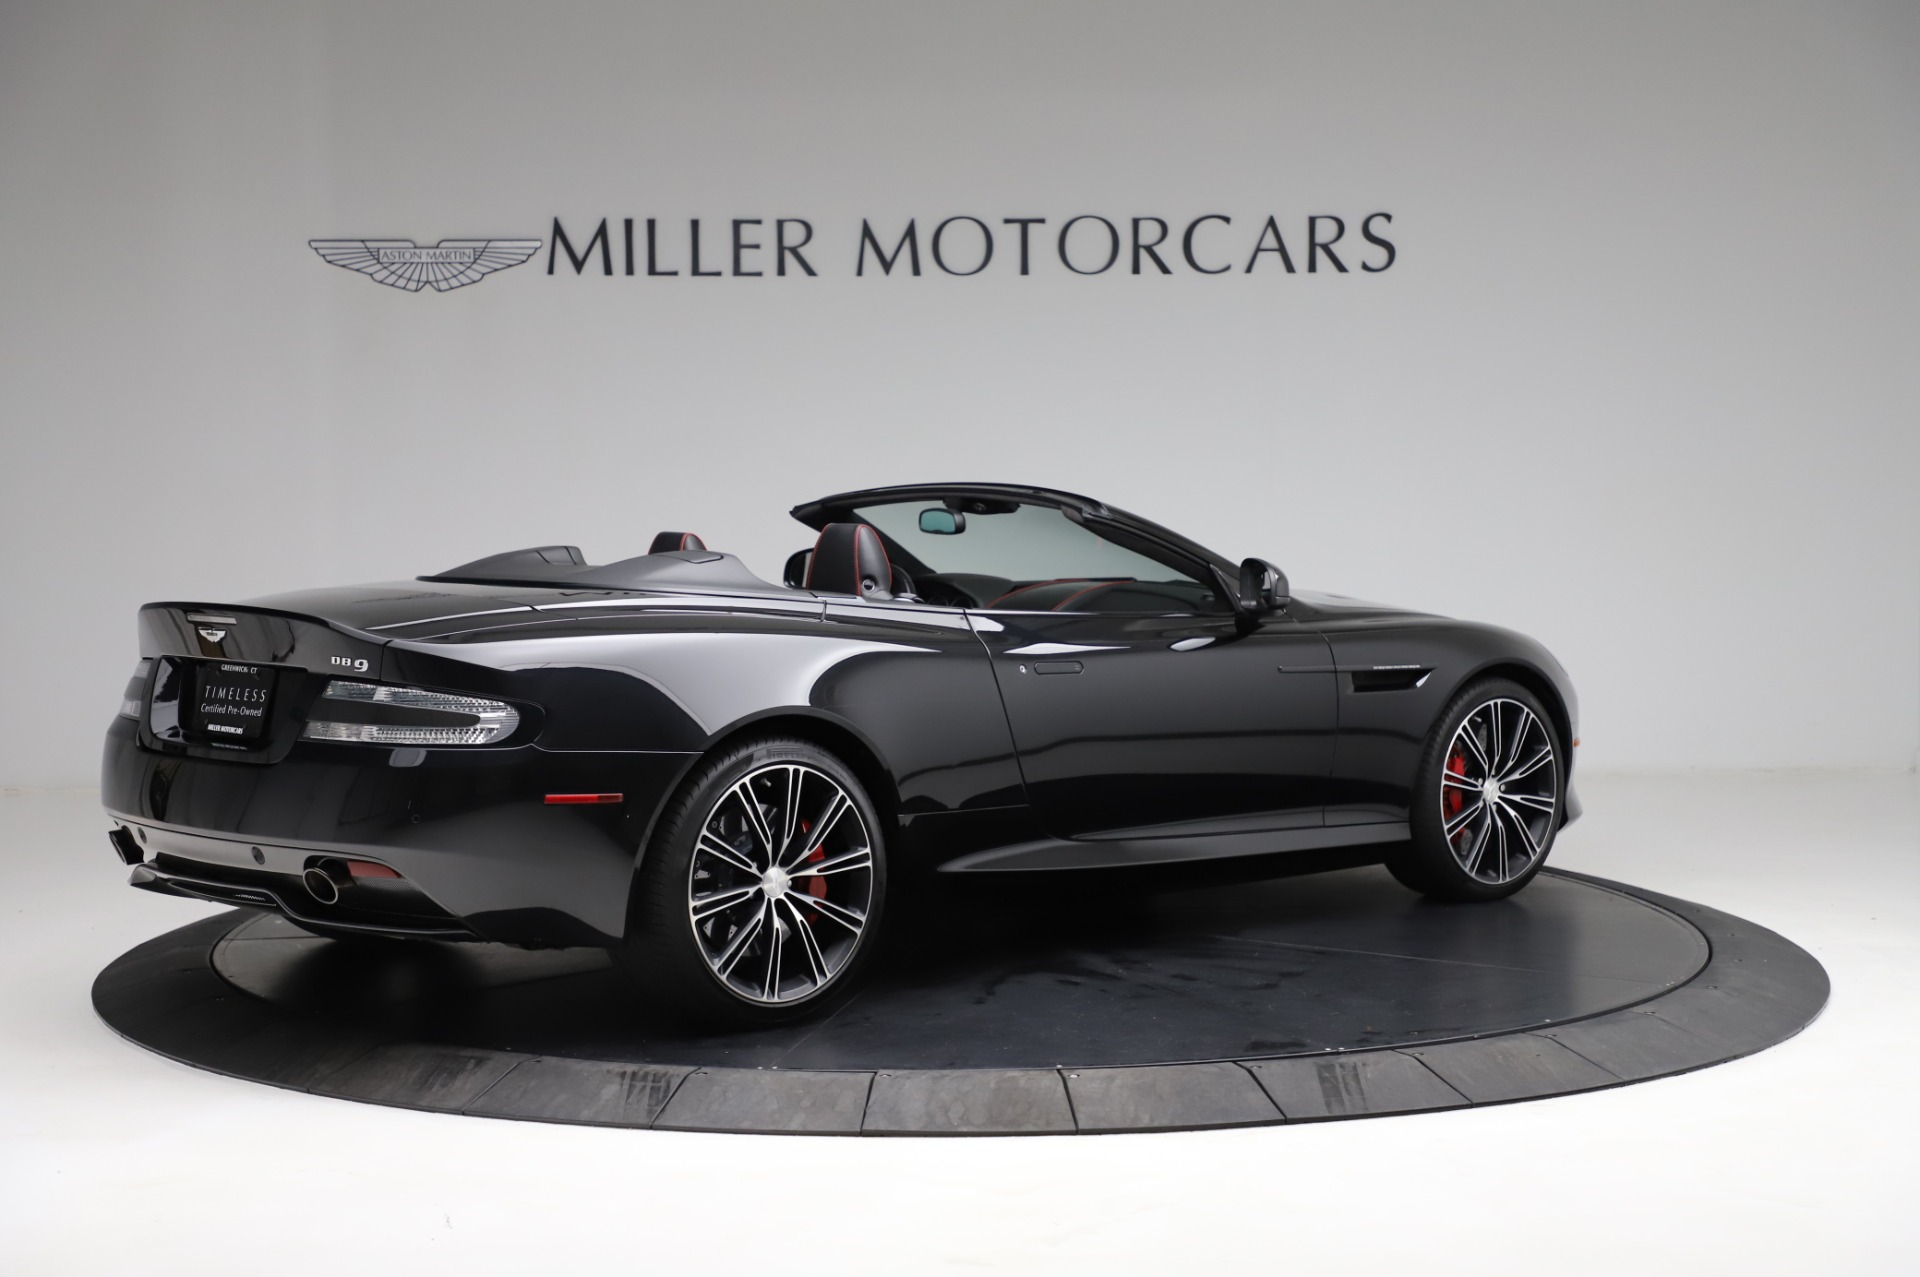 Used 2015 Aston Martin DB9 Carbon Edition Volante For Sale In Westport, CT 1919_p7